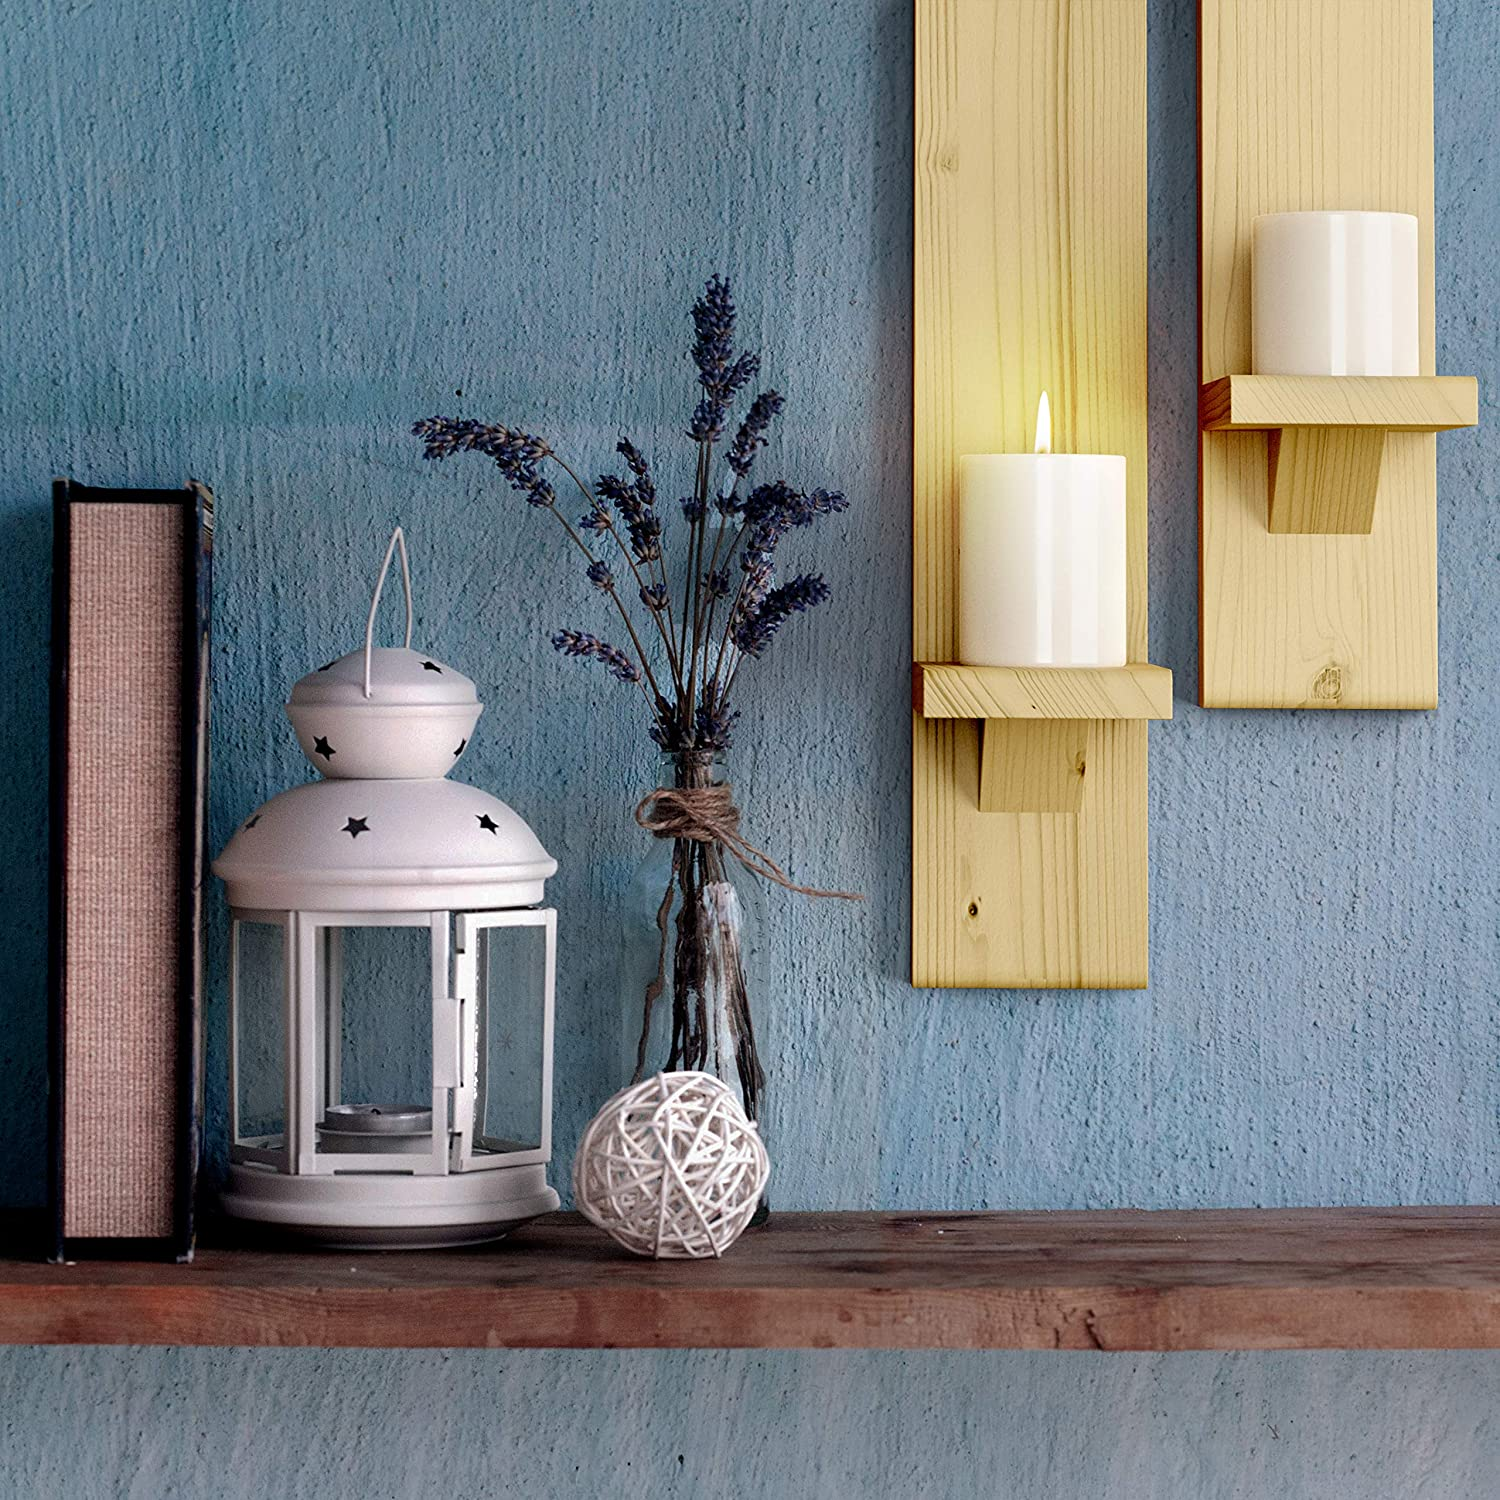 Floating Shelves Wall-mount Wooden Candle Holders Wallmounted Rustic Pillar Candle Sconce Rustic Candleholders Farmhouse Wall Decor Large Wooden Handmade Sconces Hanging Shelf